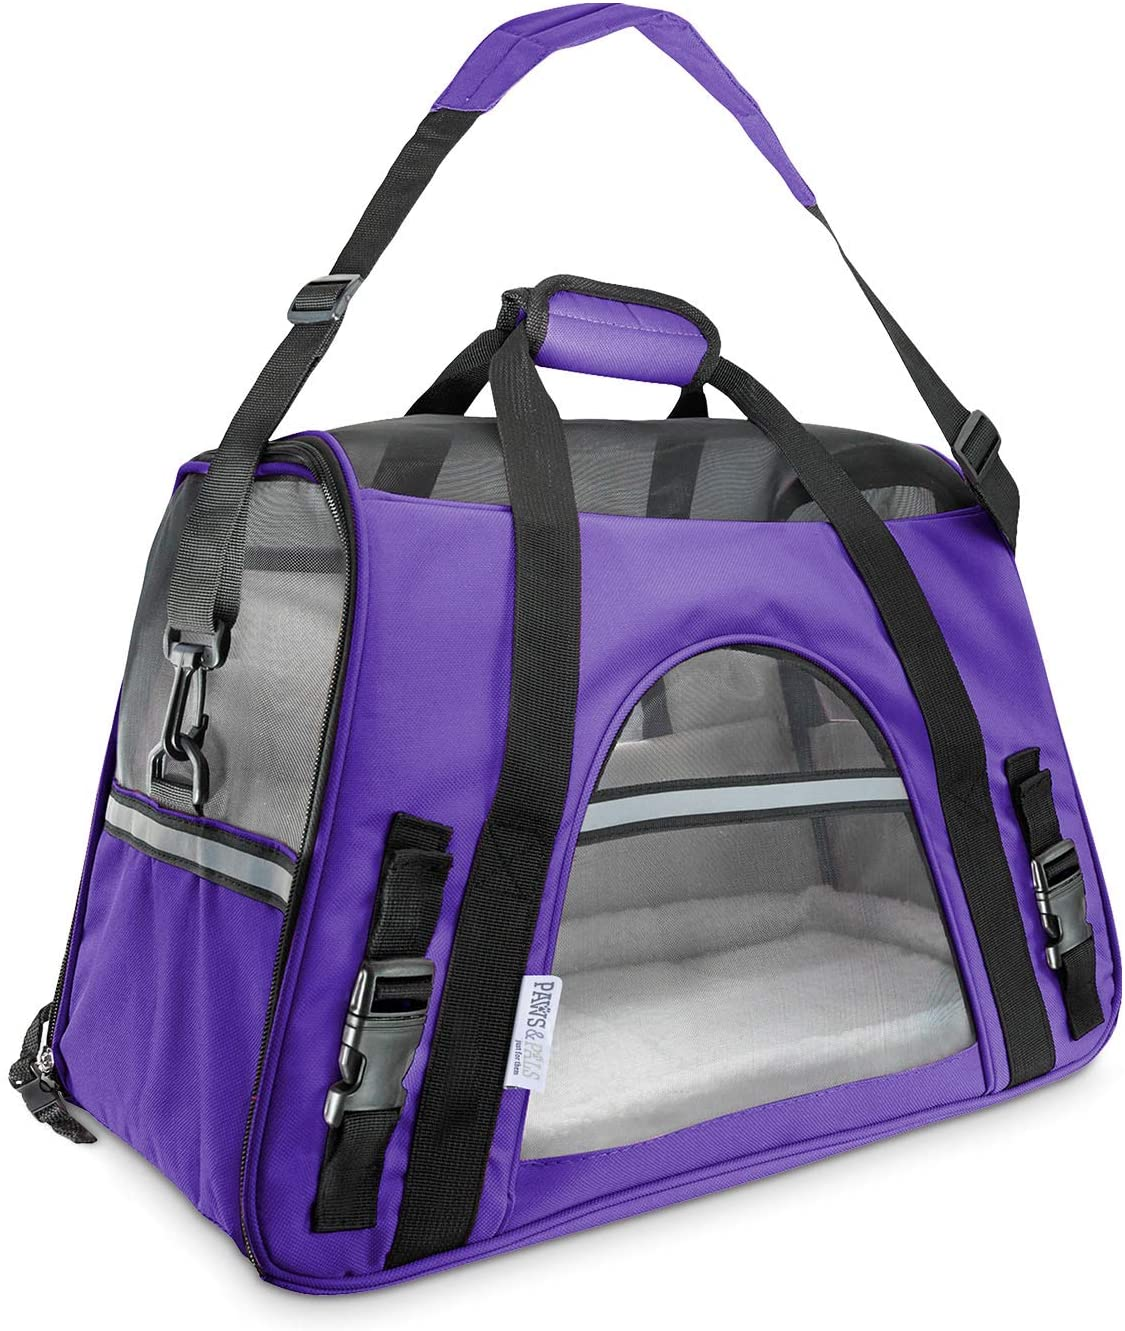 Paws & Pals Airline Approved Pet Carrier - Soft-Sided Carriers for Small Medium Cats and Dogs Air-Plane Travel On-Board Under Seat Carrying Bag with Fleece Bolster Bed for Kitten Cat Puppy Dog Taxi : Pet Supplies